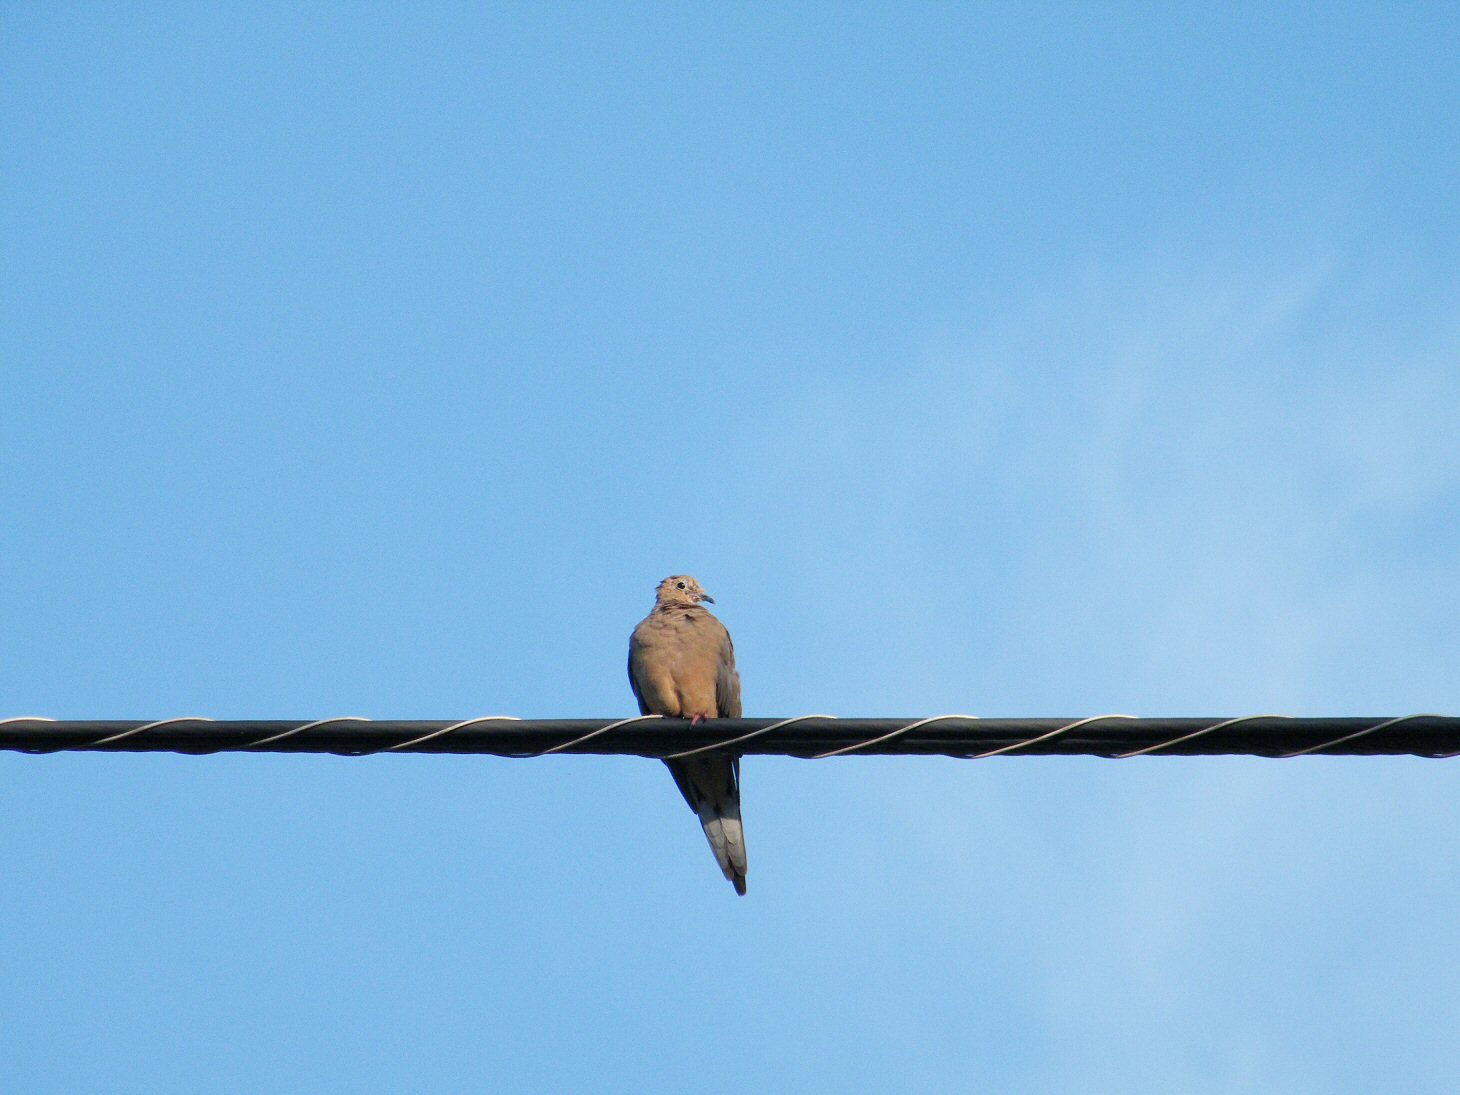 Pigeon on a Power Line in front of Blue Skies